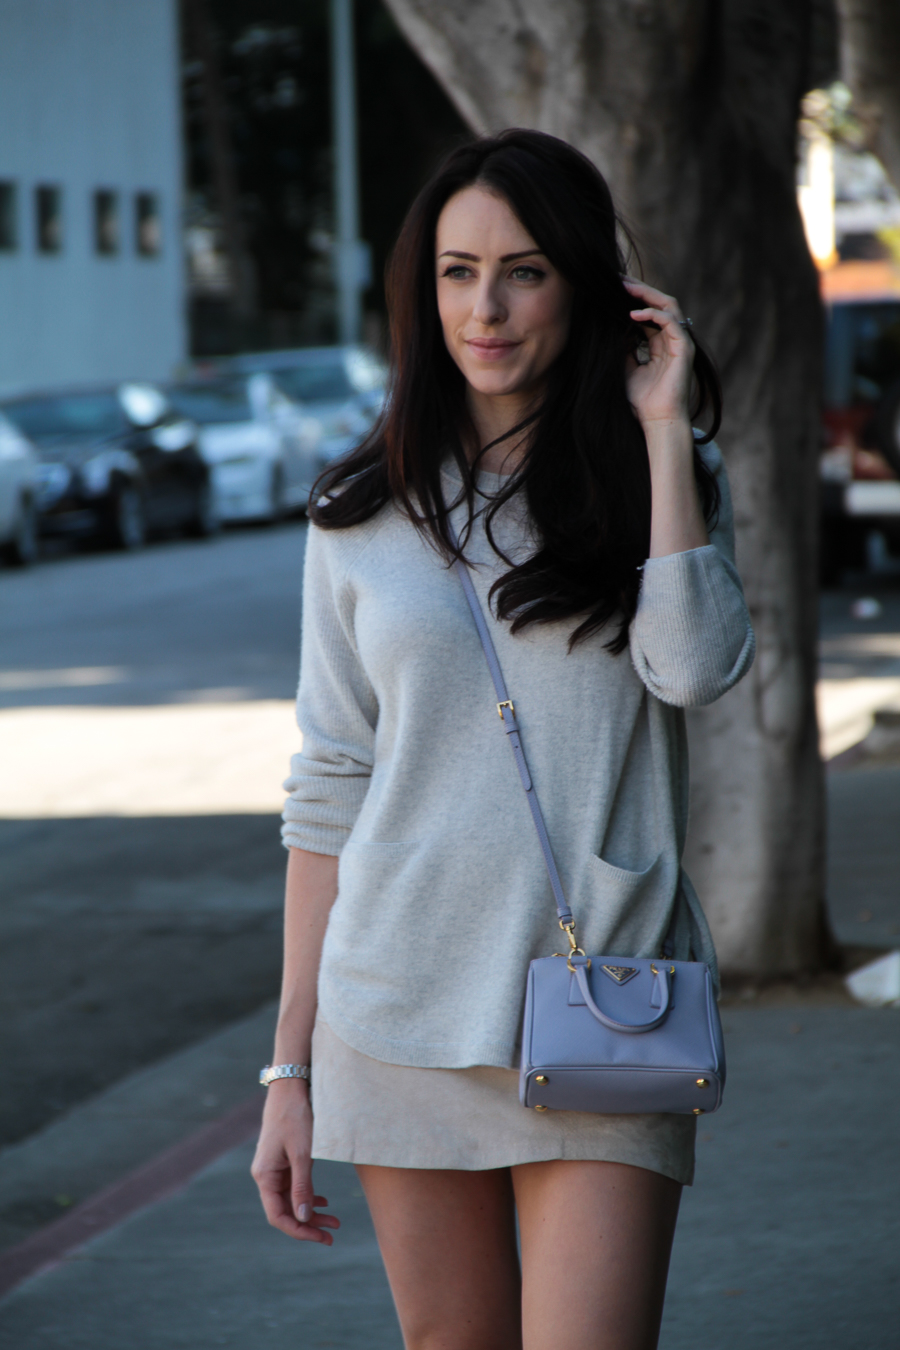 clutch and carry on - sabrina chakici - travel & style blog - LA street style - catherine taylor photography-3